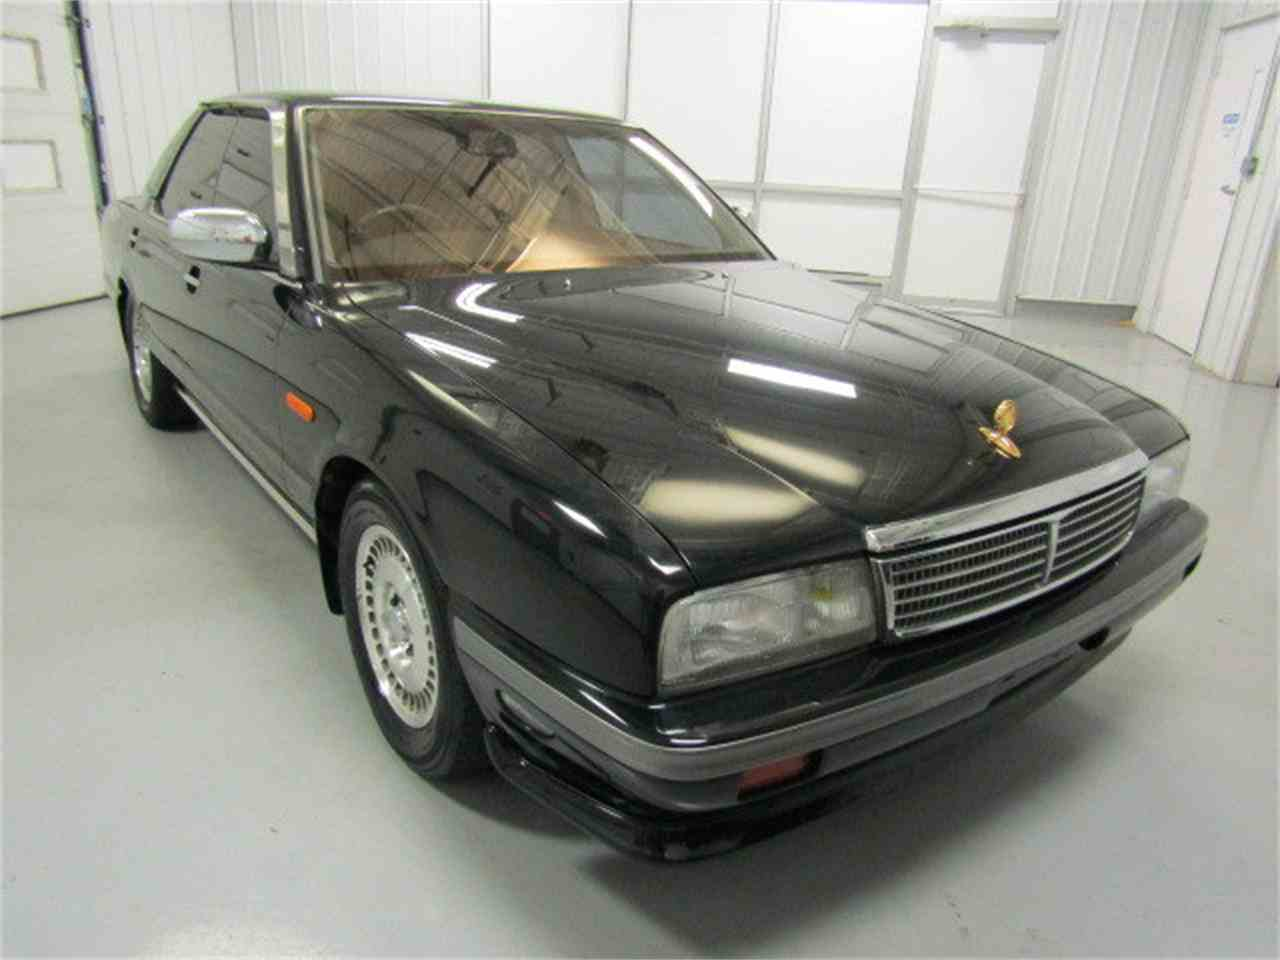 Large Picture of '90 Nissan Cima located in Virginia - $5,990.00 Offered by Duncan Imports & Classic Cars - JLDM